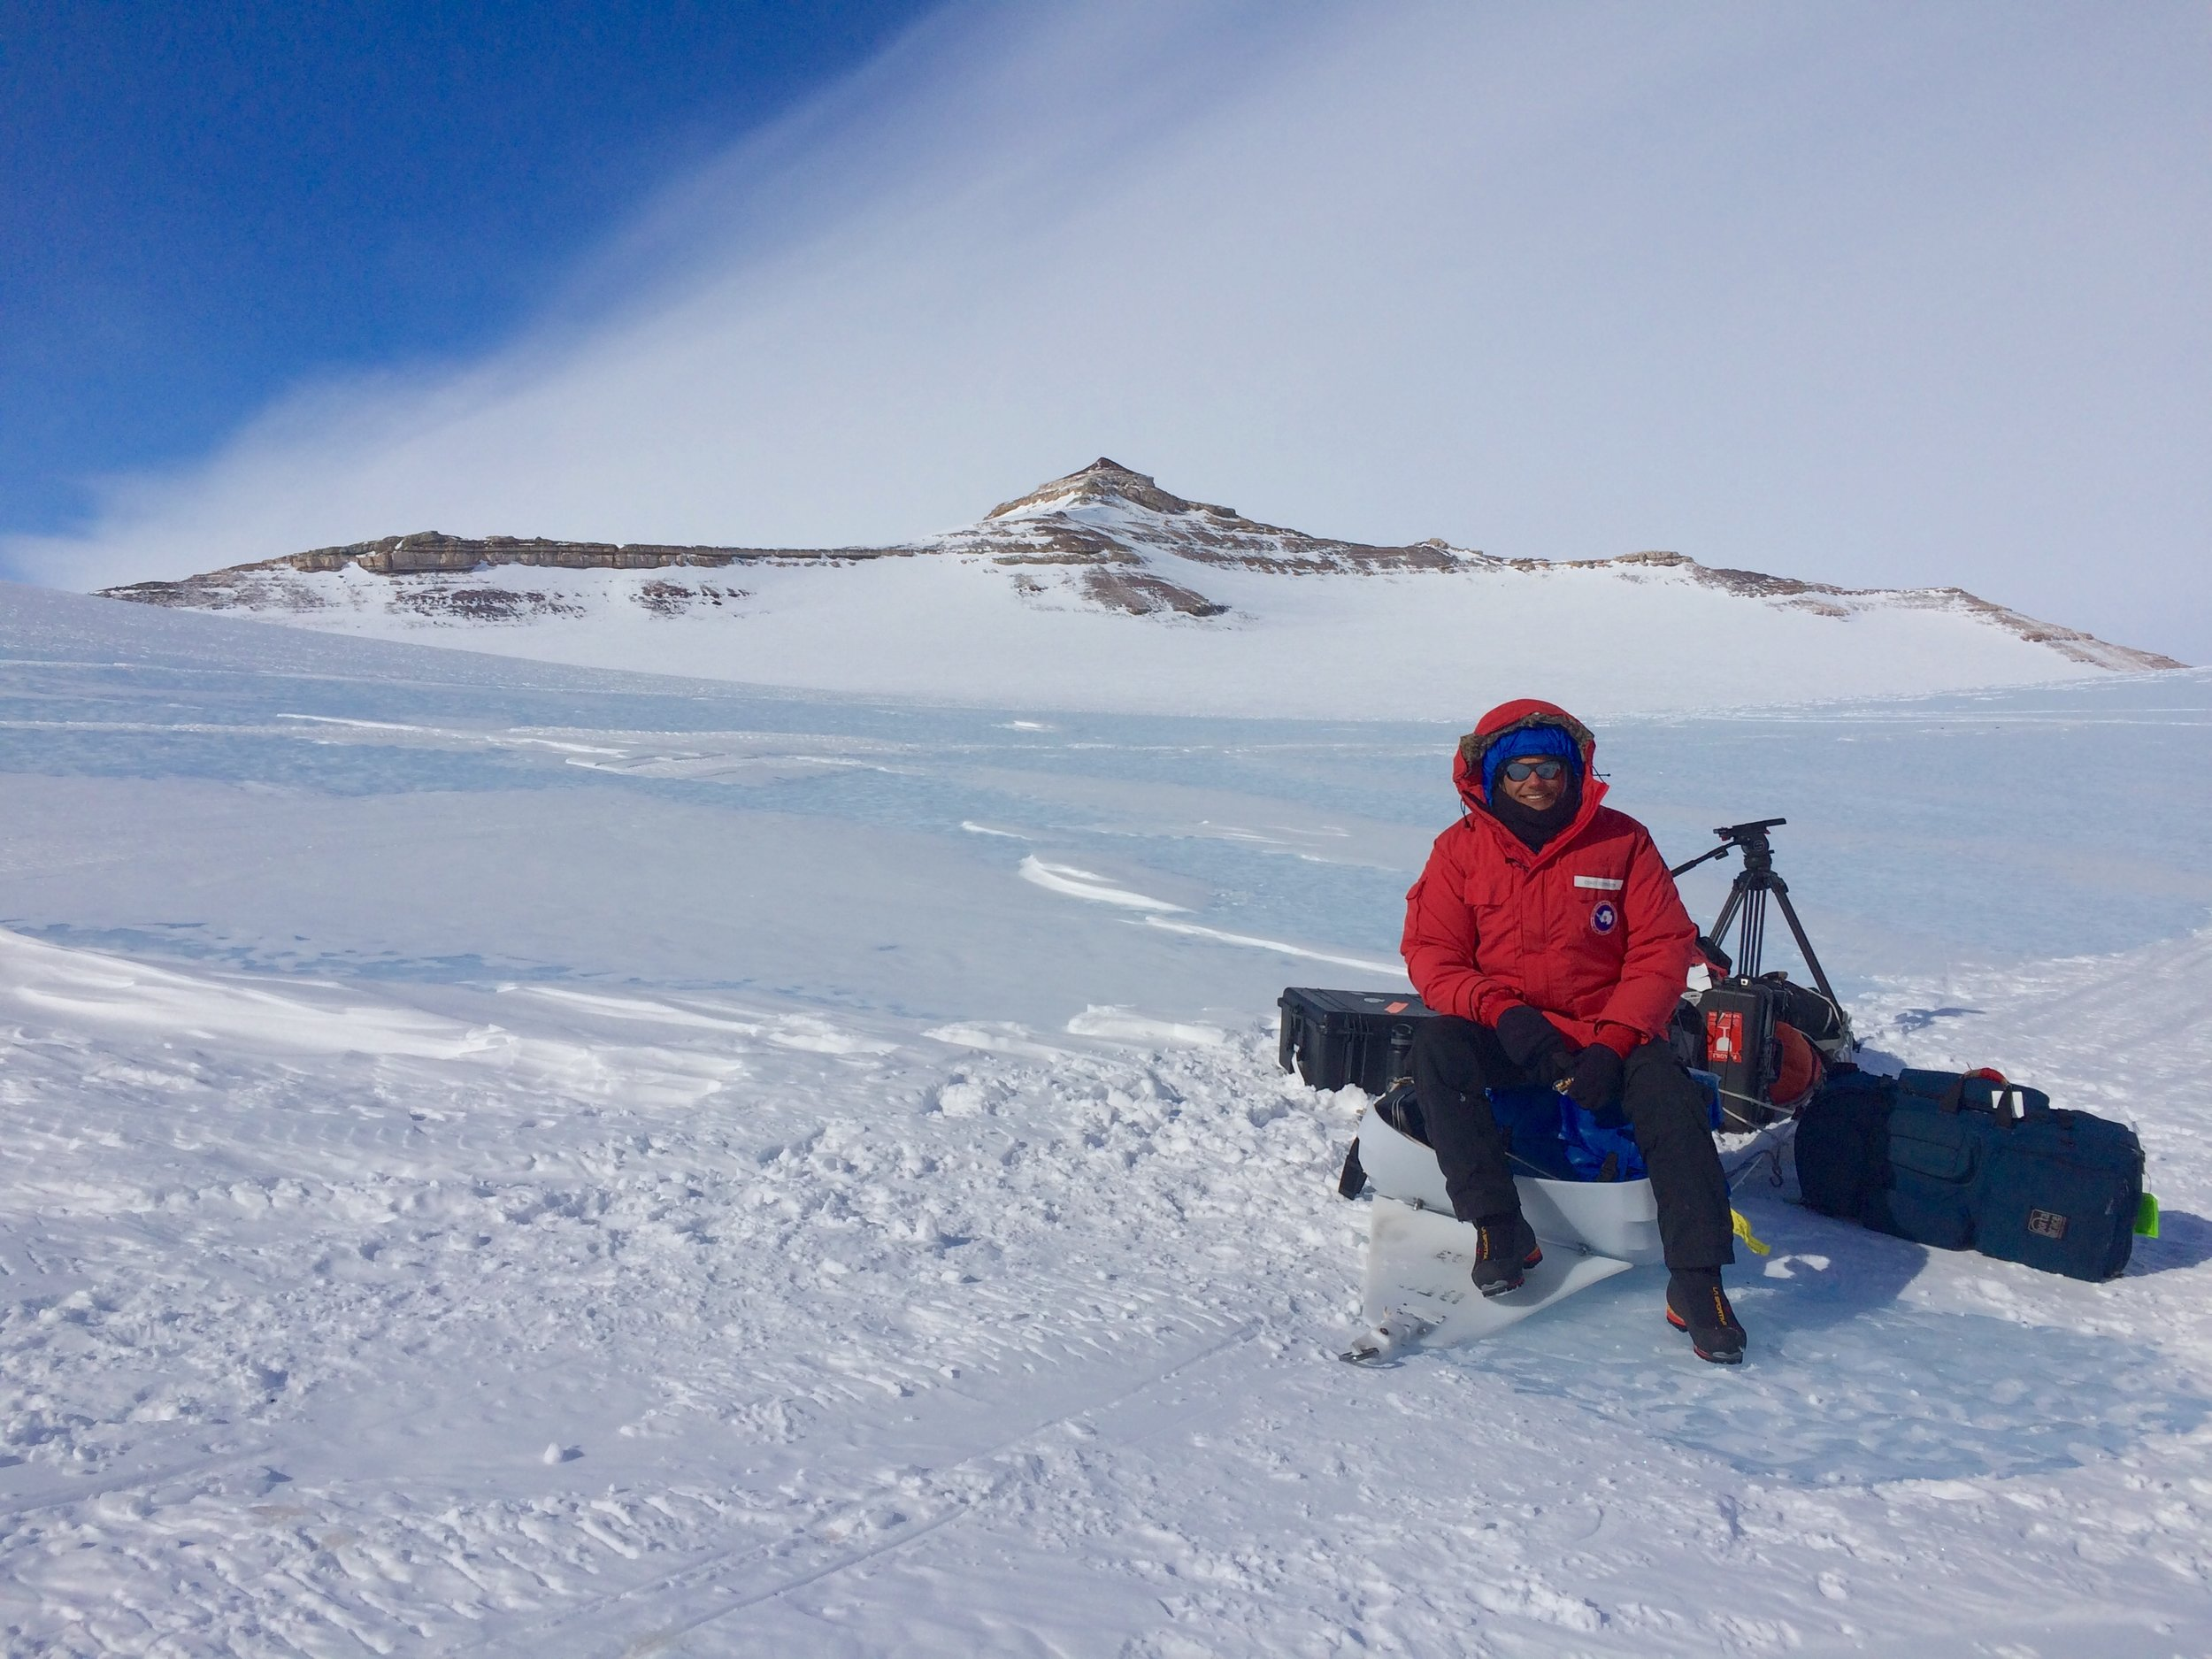 Waiting for a pickup on the snow machine in the remote Antarctic interior.